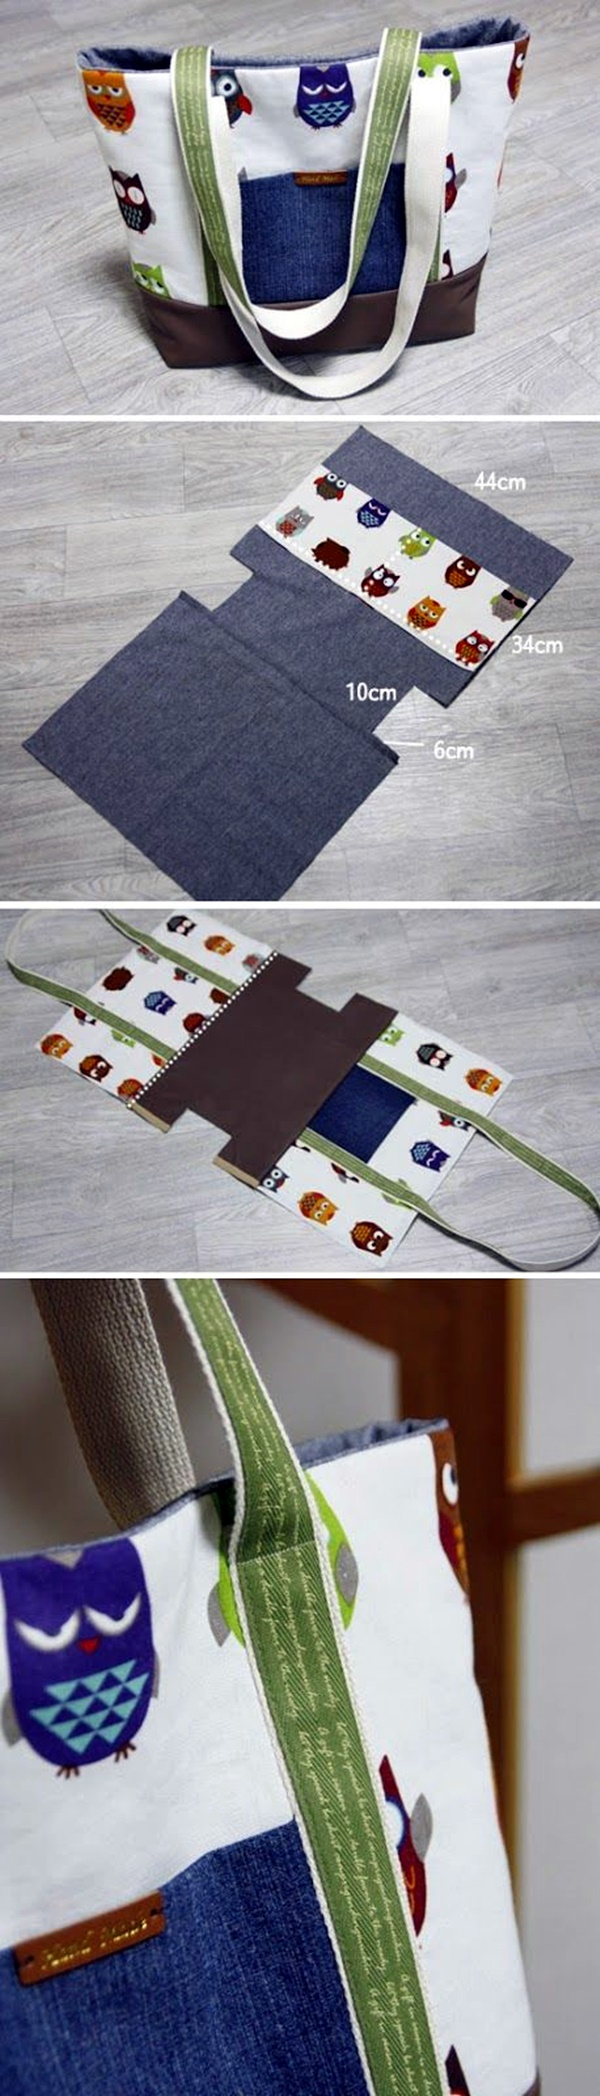 Quick and So Useful DIY's to Learn (17)